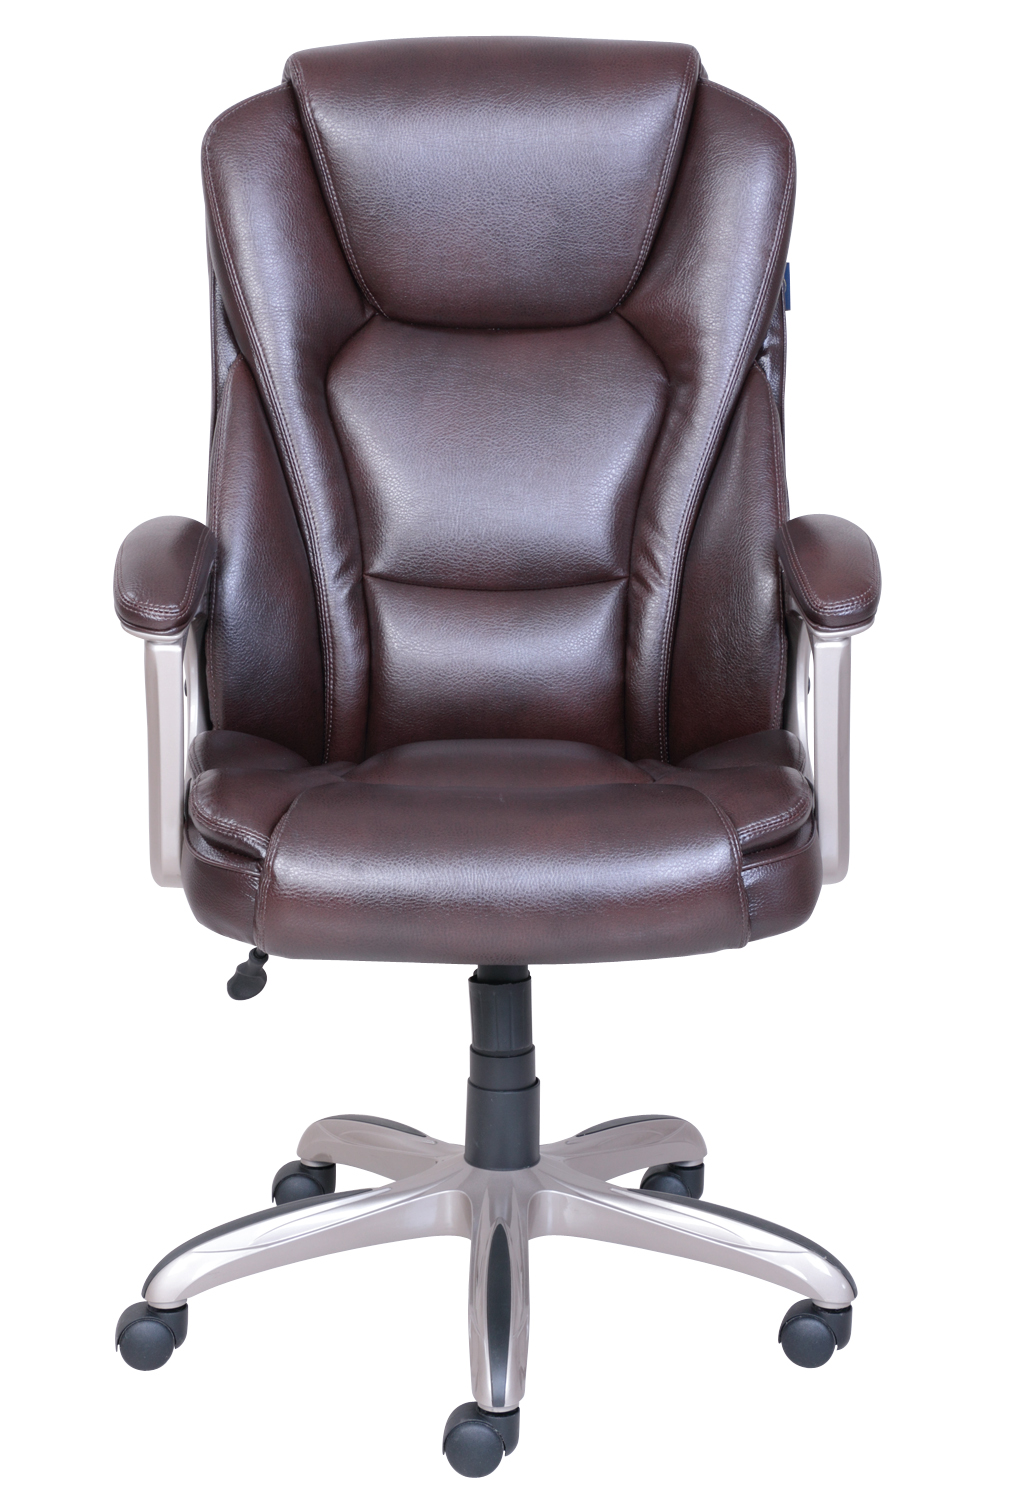 Serta Amp Tall Commercial Office Chair With